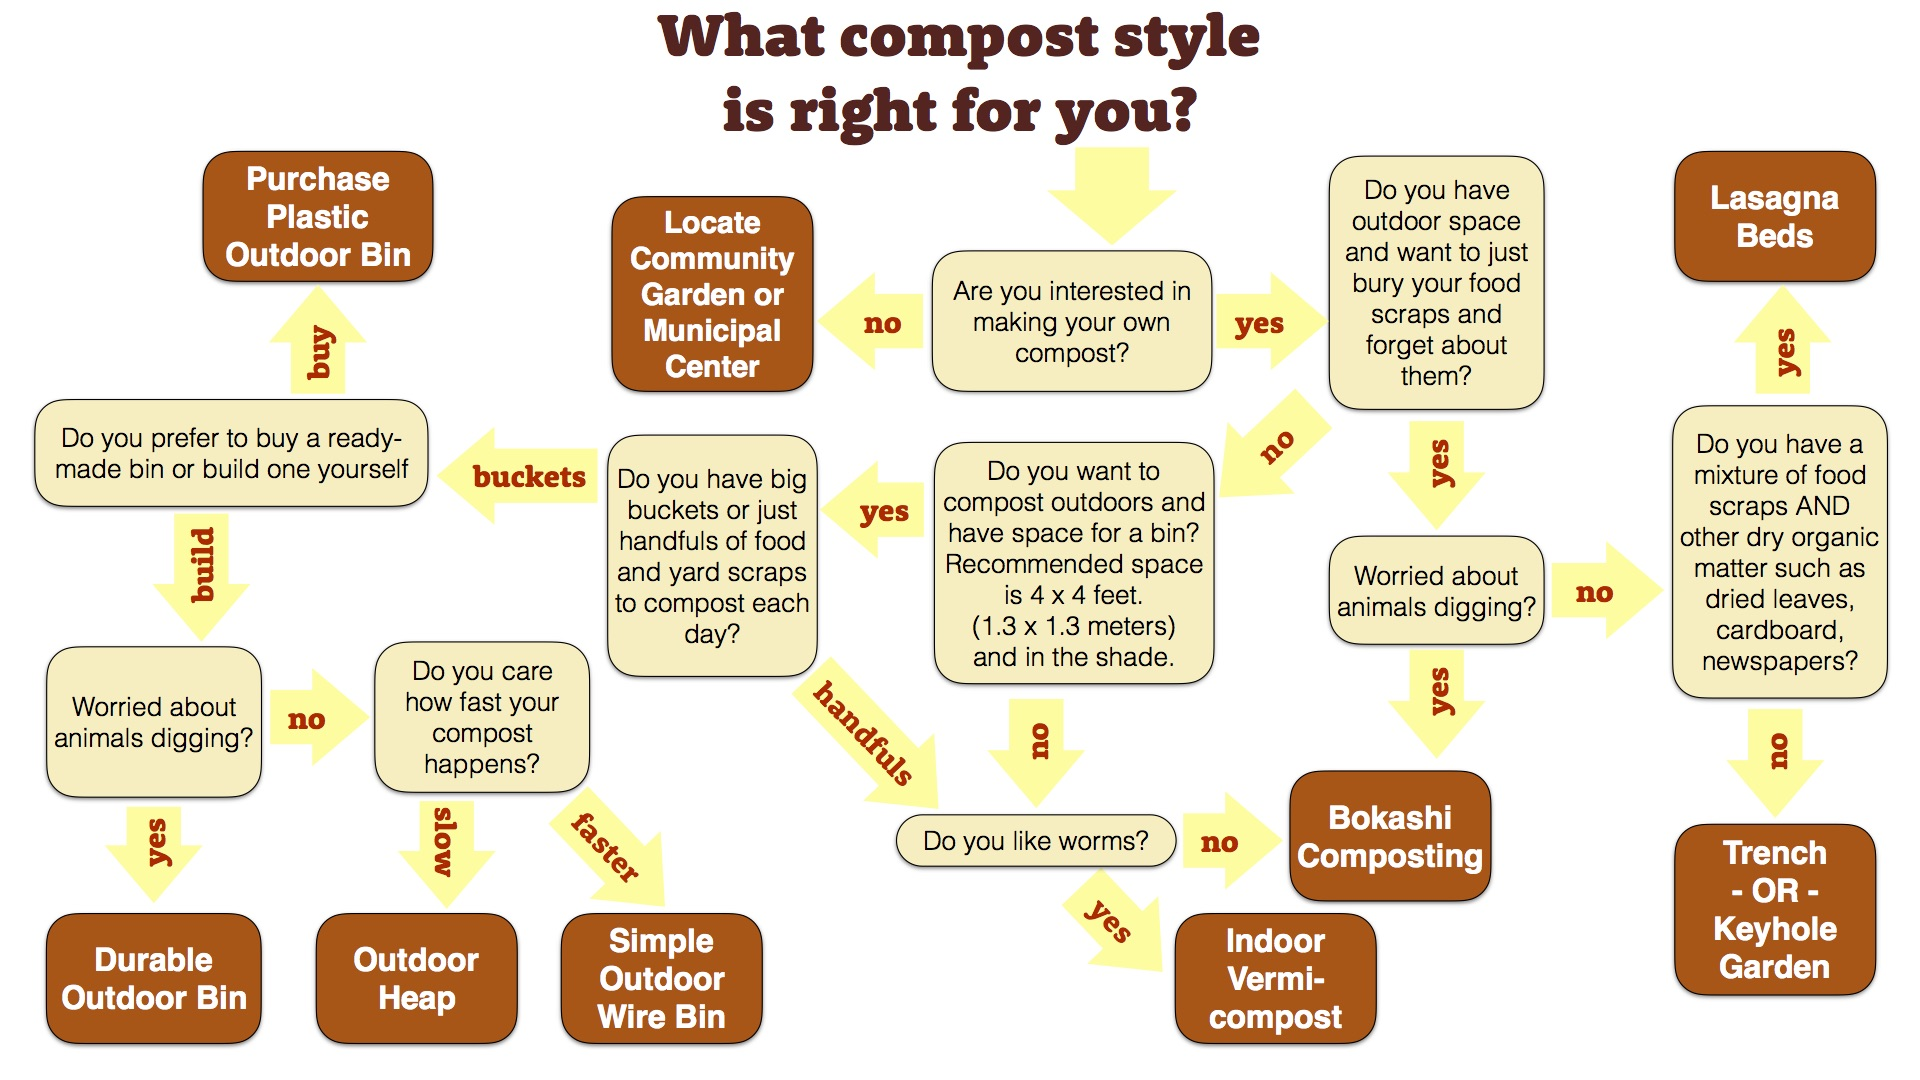 What composting style is right for you?